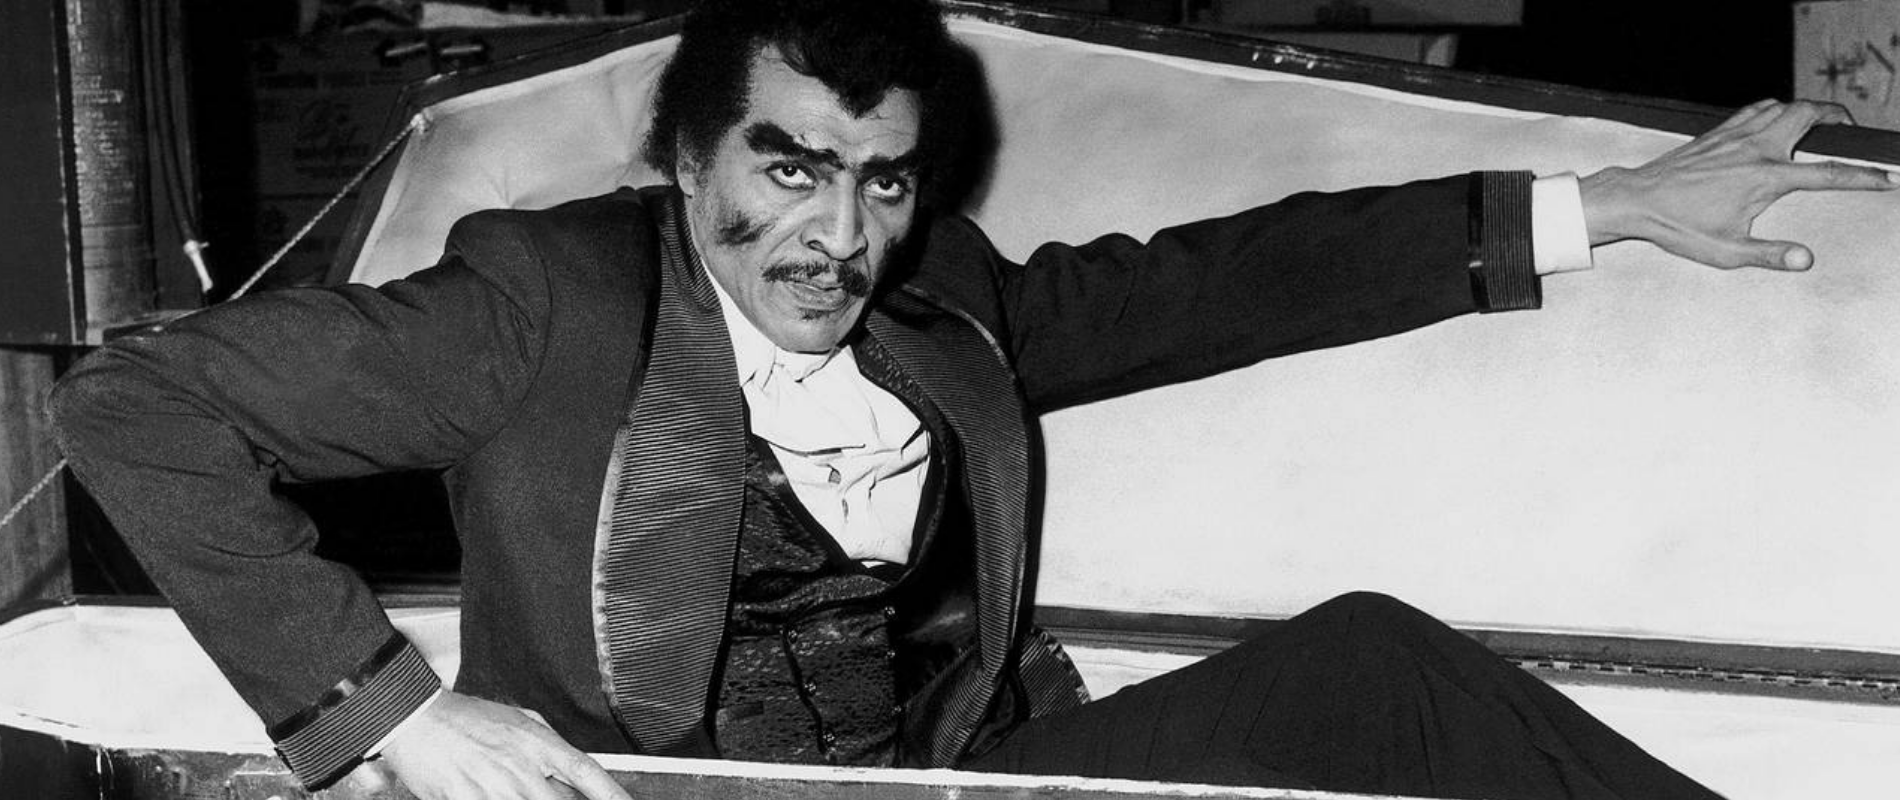 Blacula (1972) — Page Banner